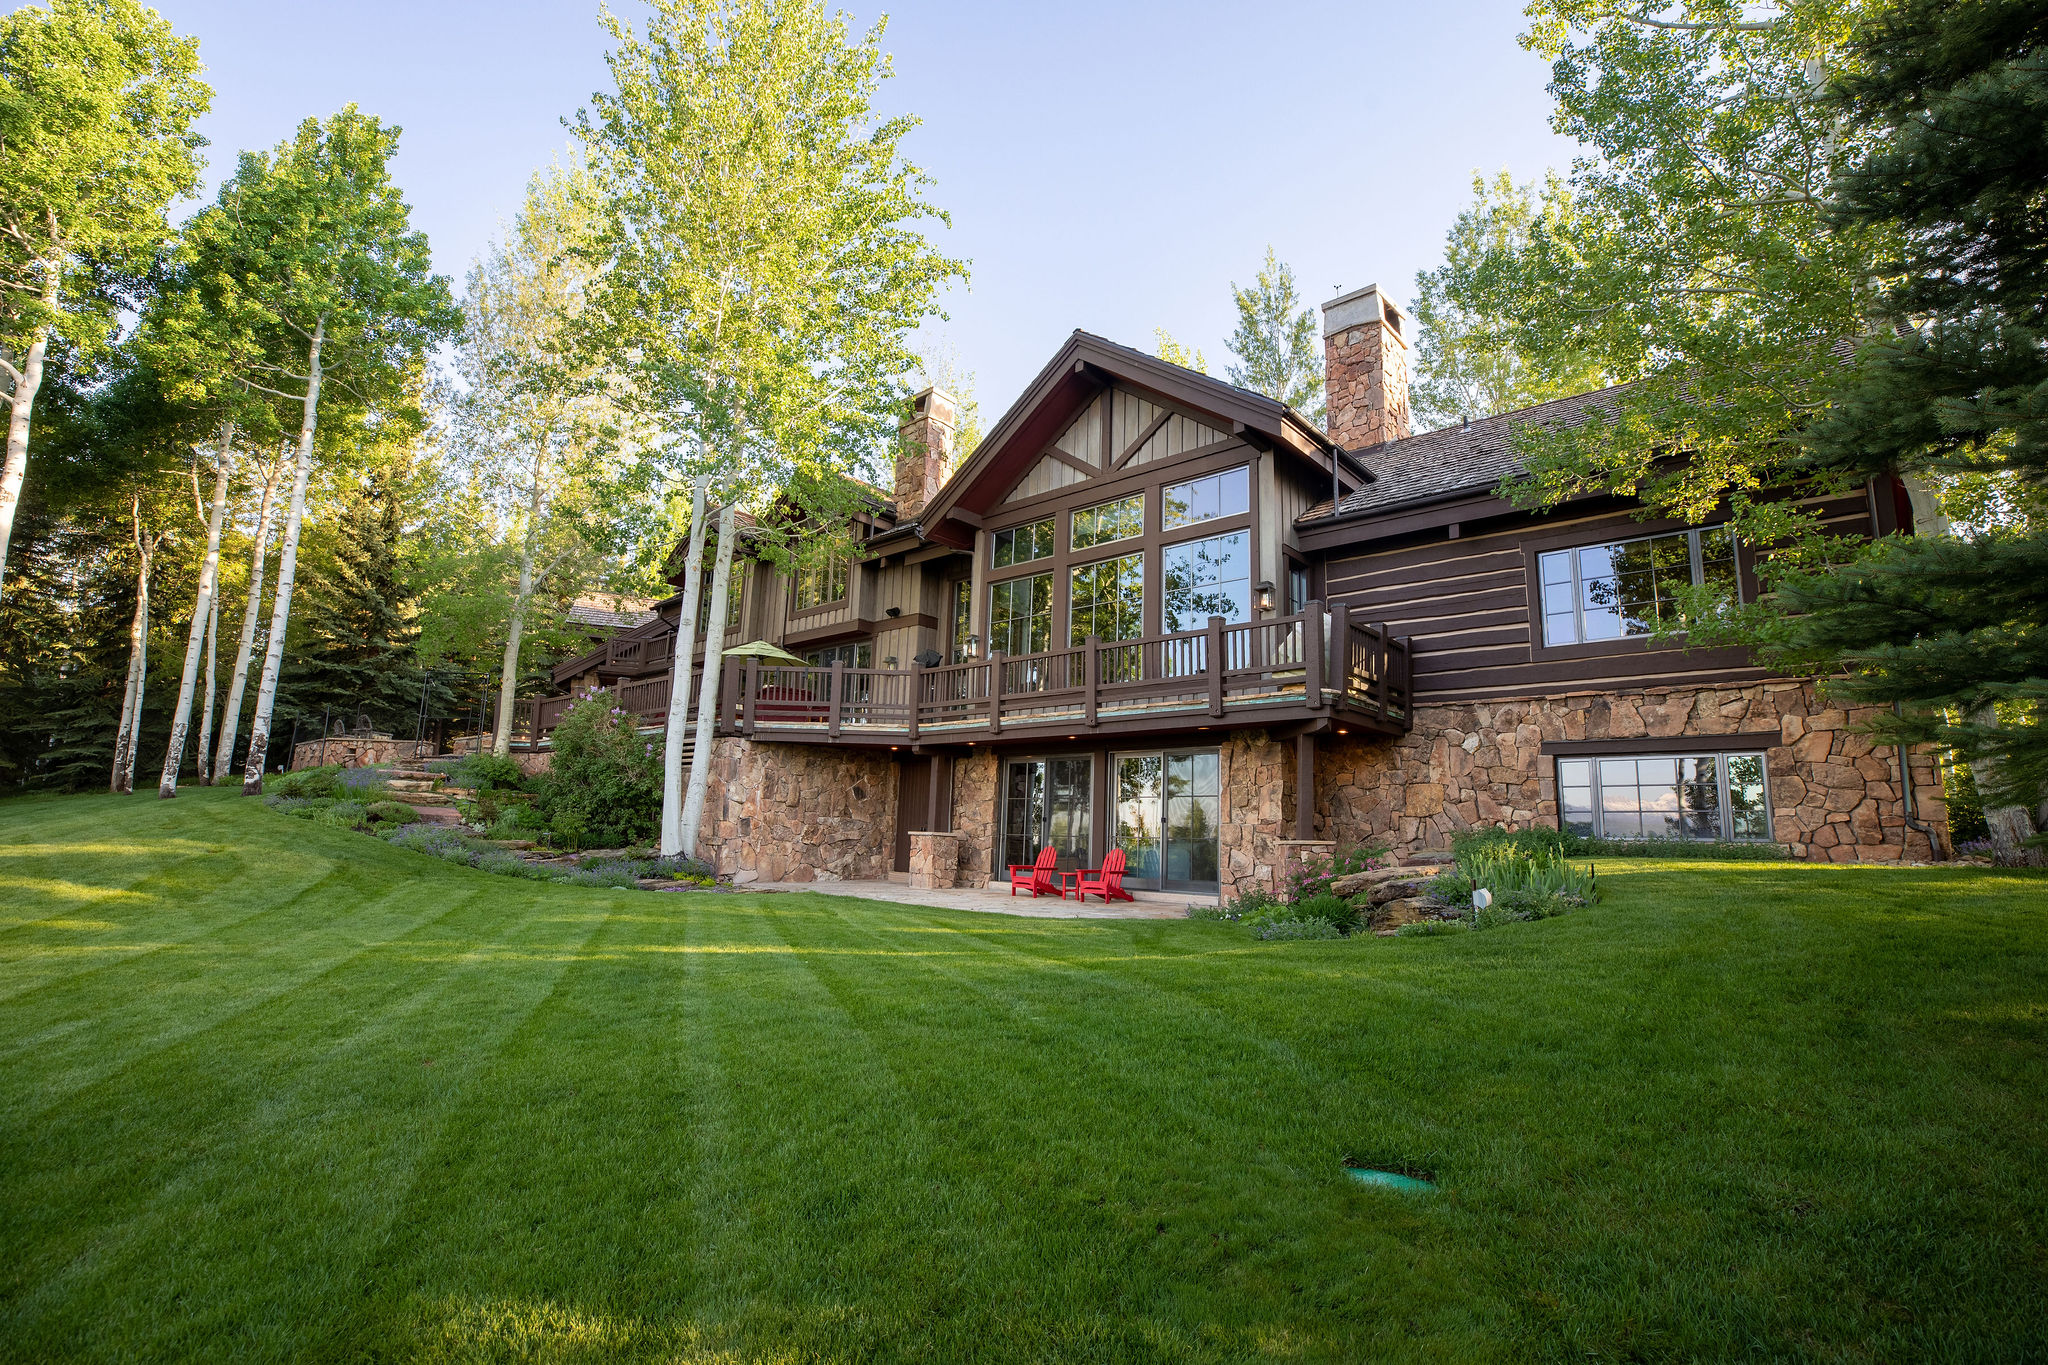 Pristine lawn and exterior of luxury mountain home